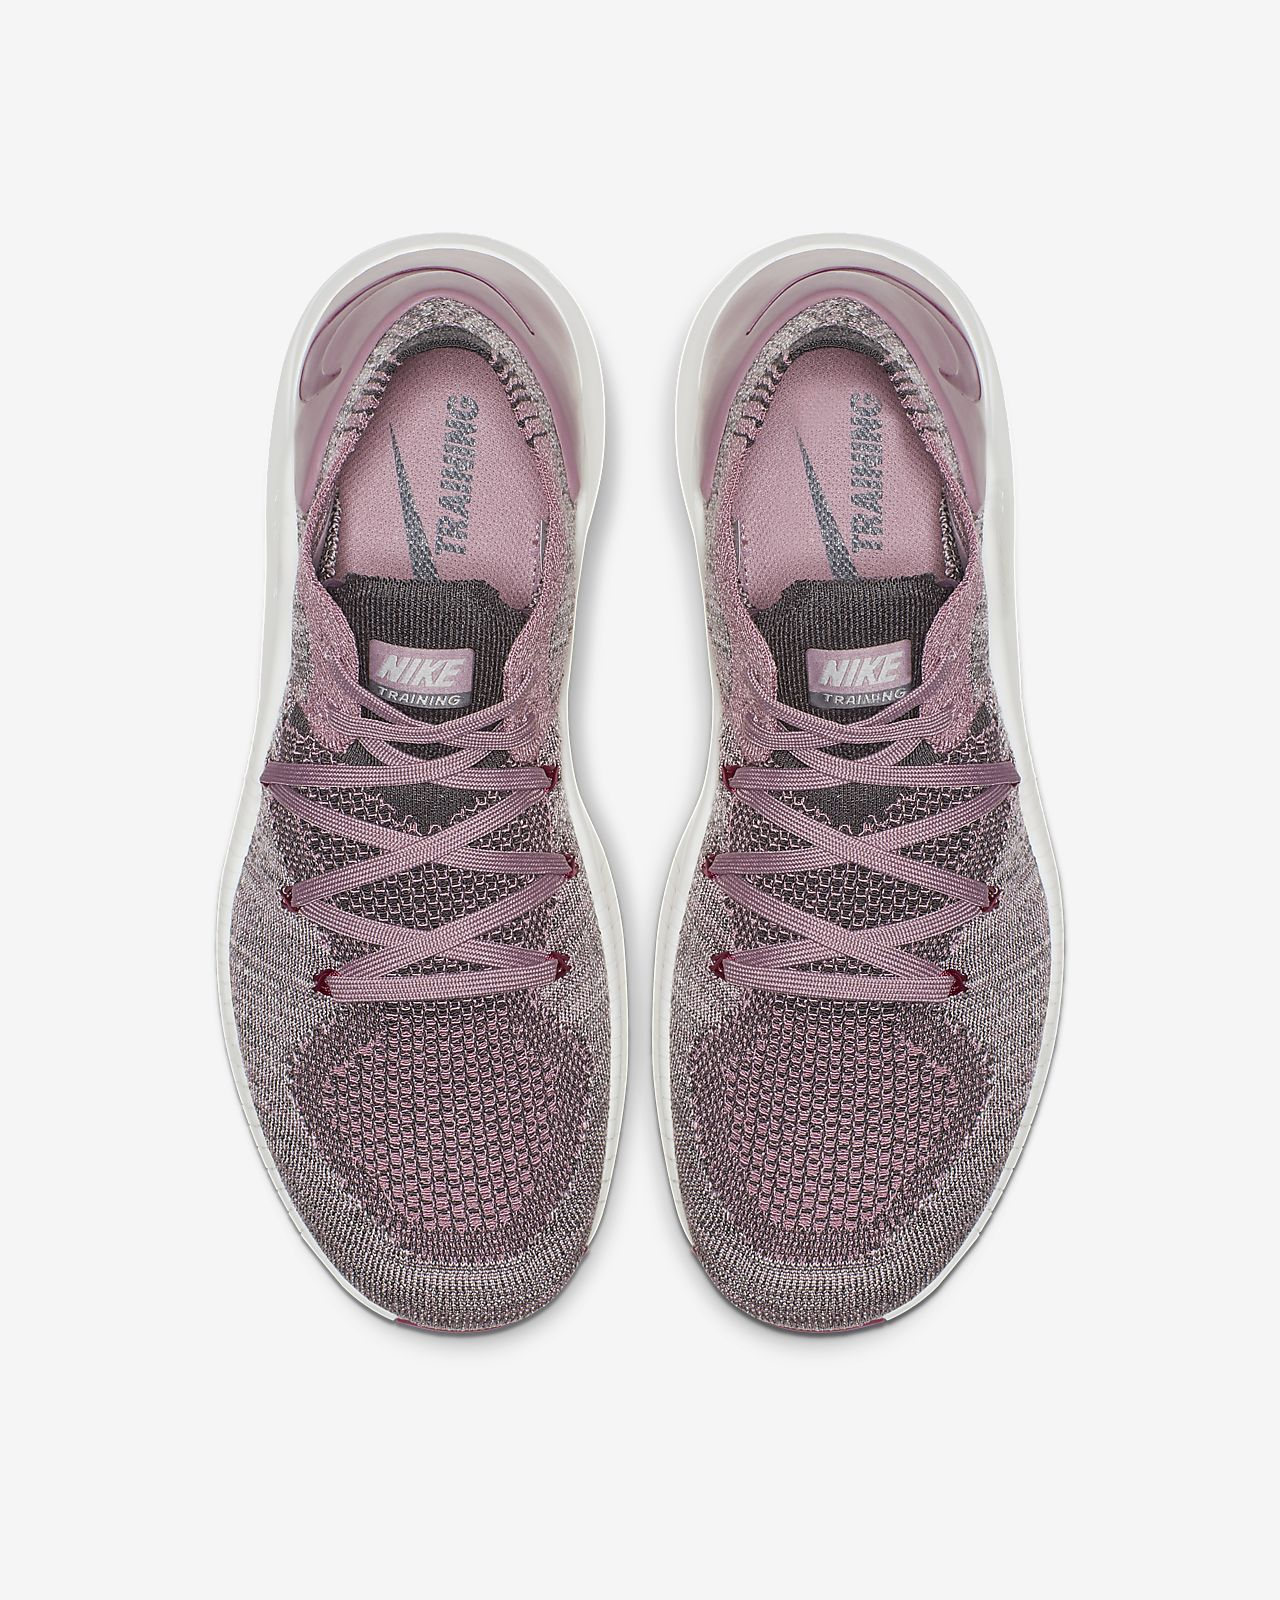 7a37f6b21c75b Nike Free TR Flyknit 3 Women's Gym/HIIT/Cross Training Shoe. Nike.com LU